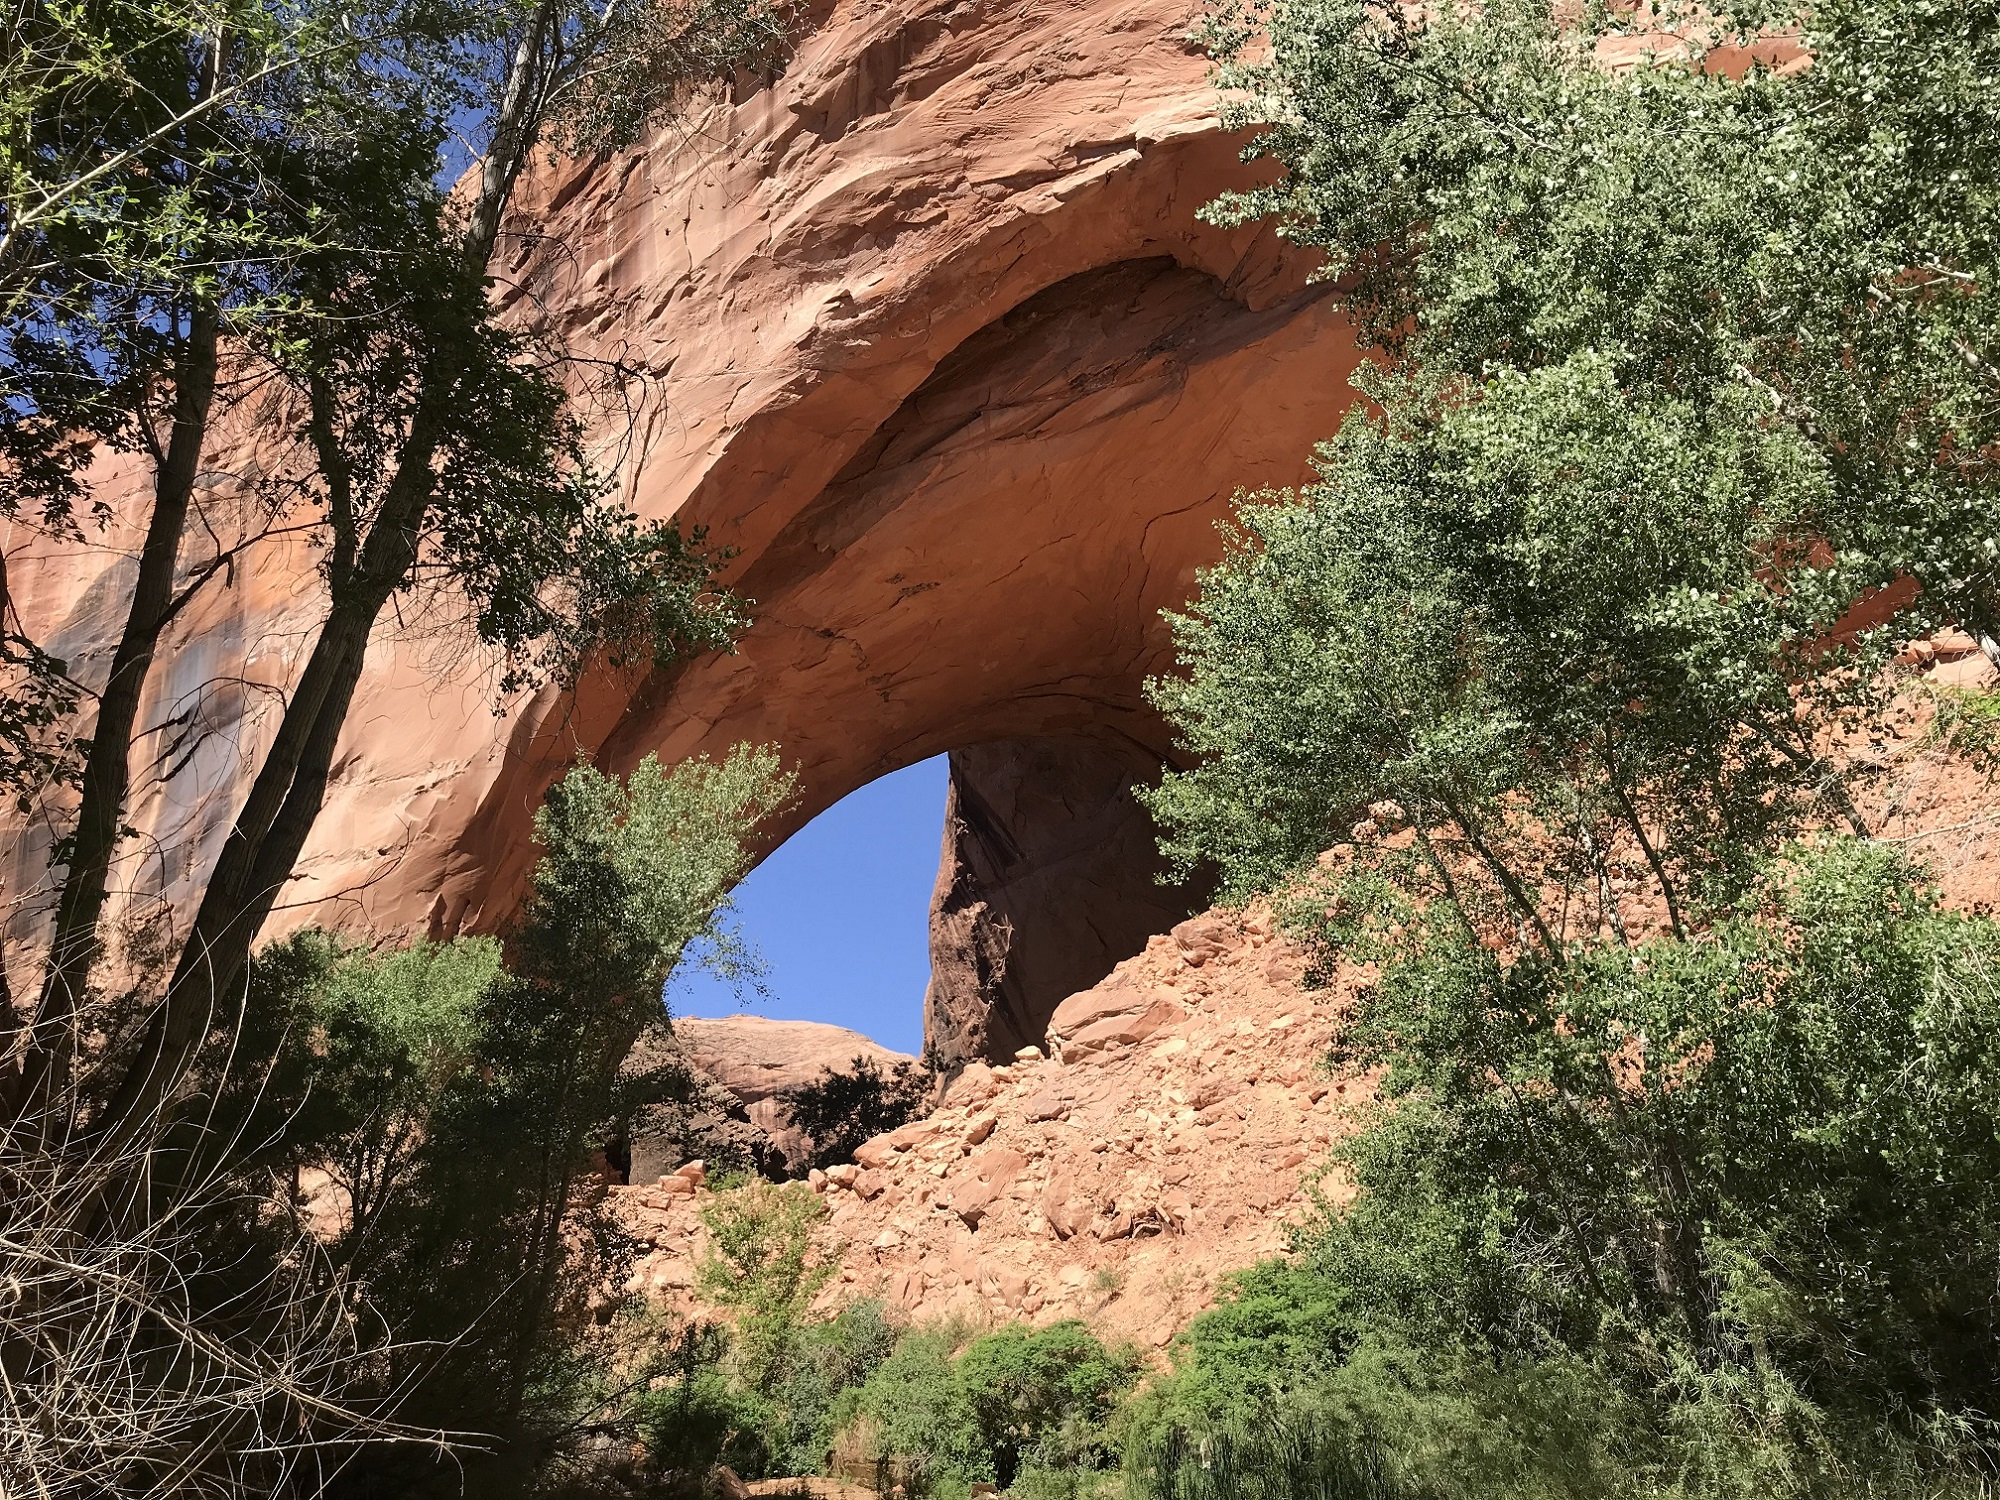 Exploring Along Southern Utah's Hole in the Rock Road